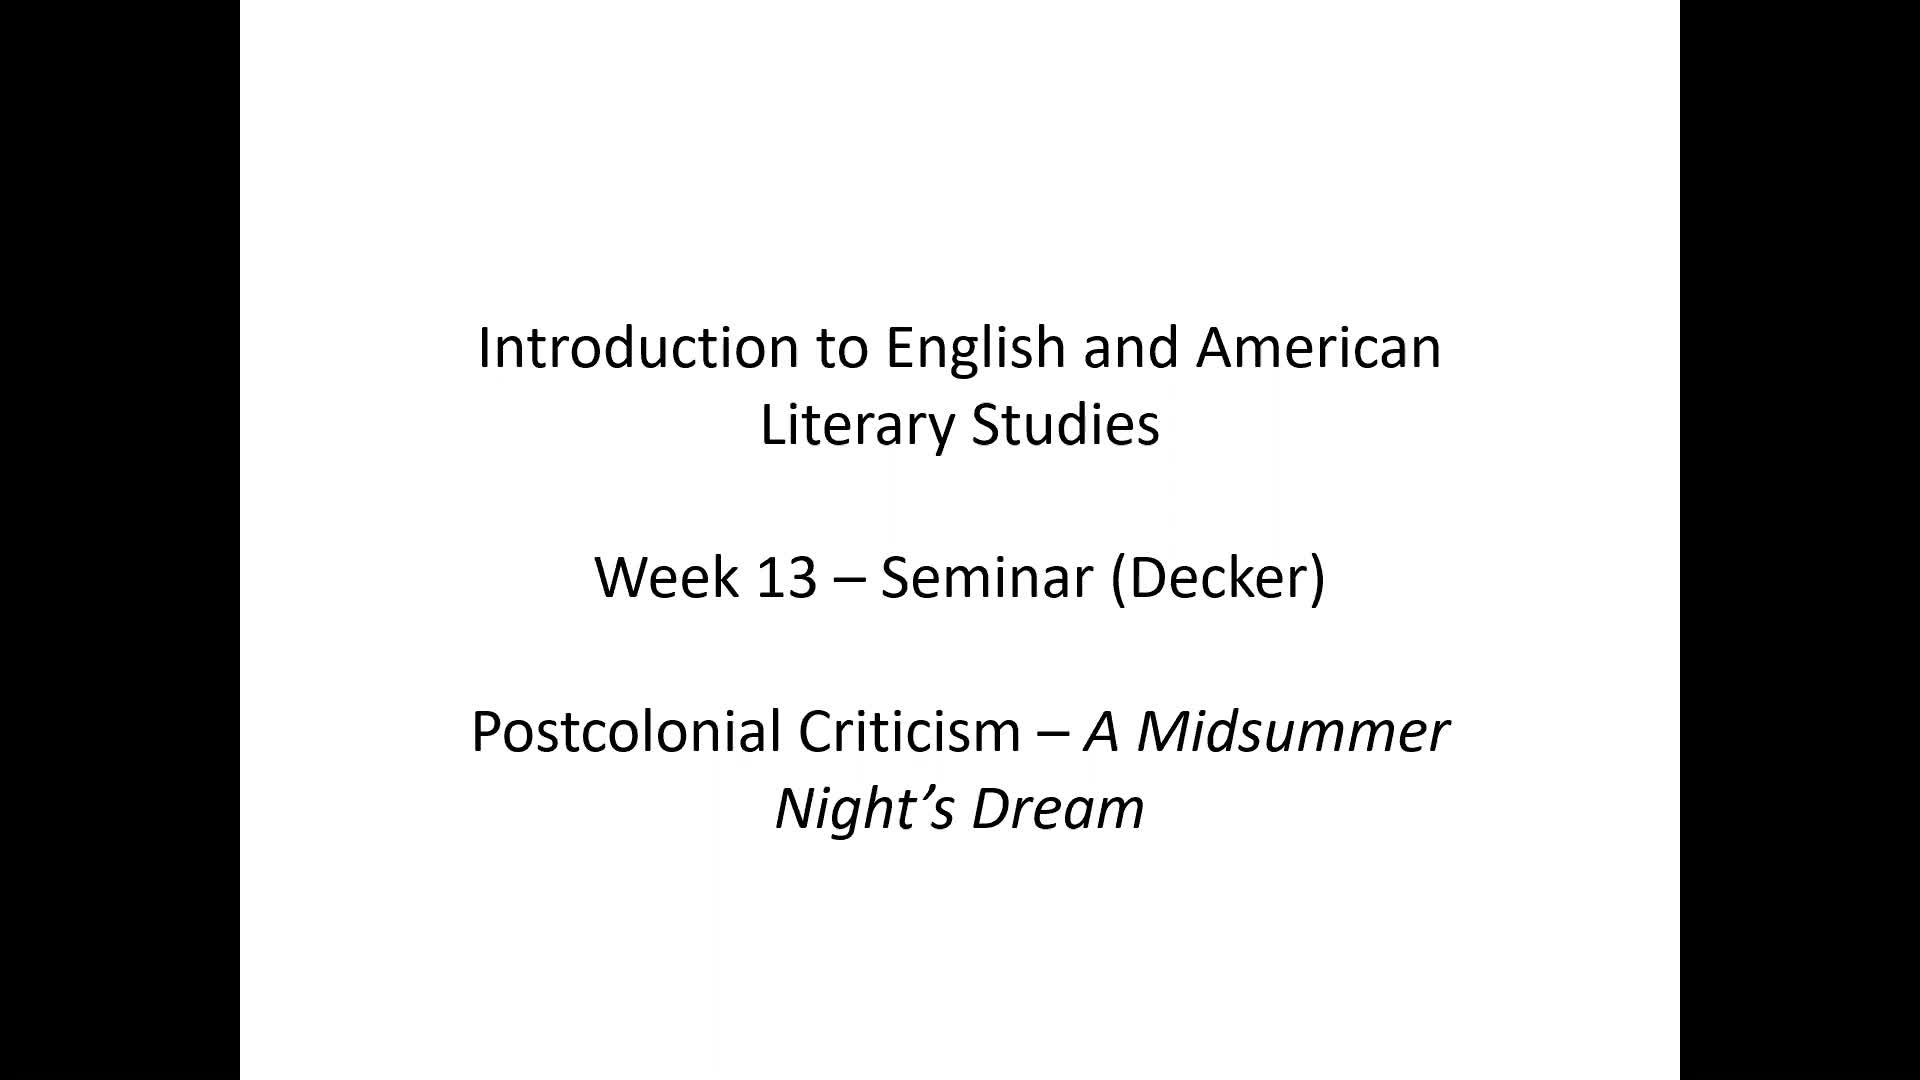 Introduction to English and American Literary Studies - Seminar Decker - Week 13